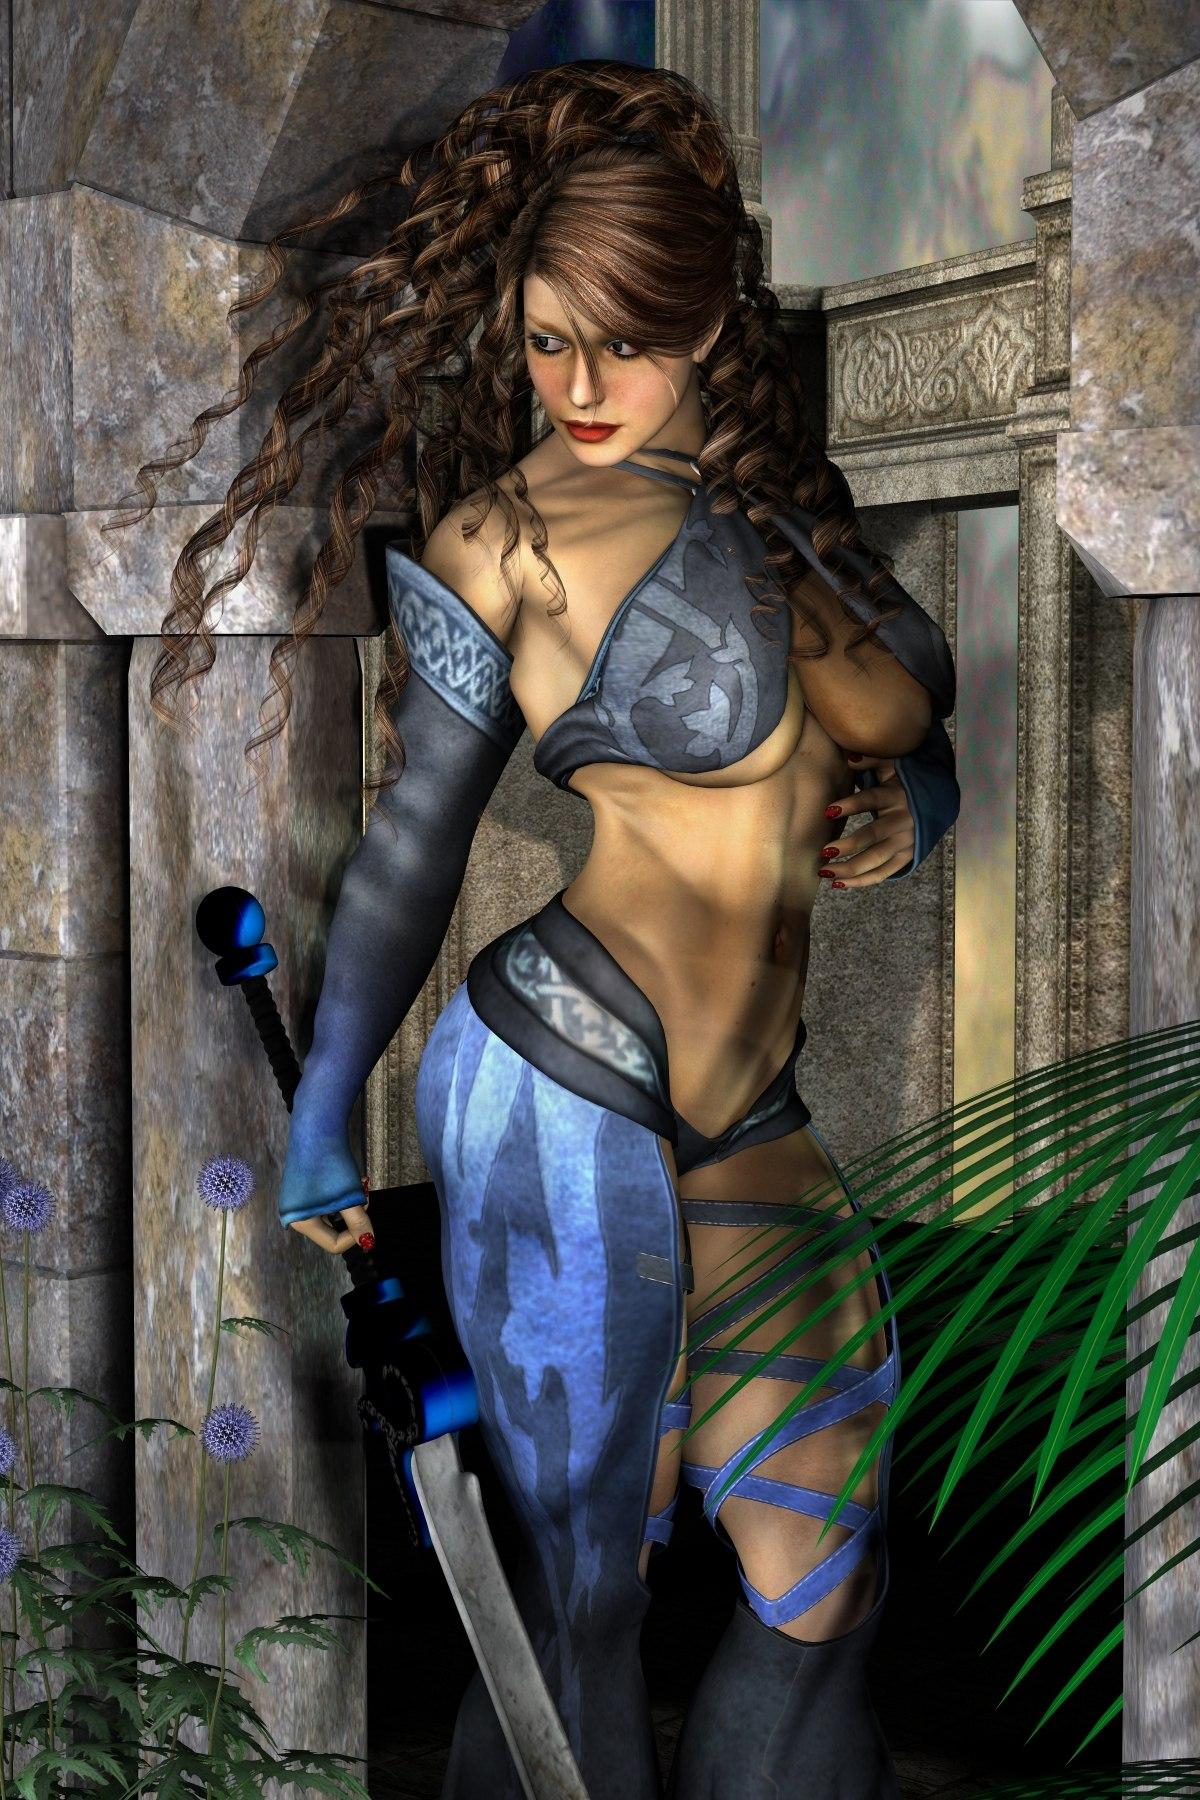 3d warrior girls gallery erotica thumbs